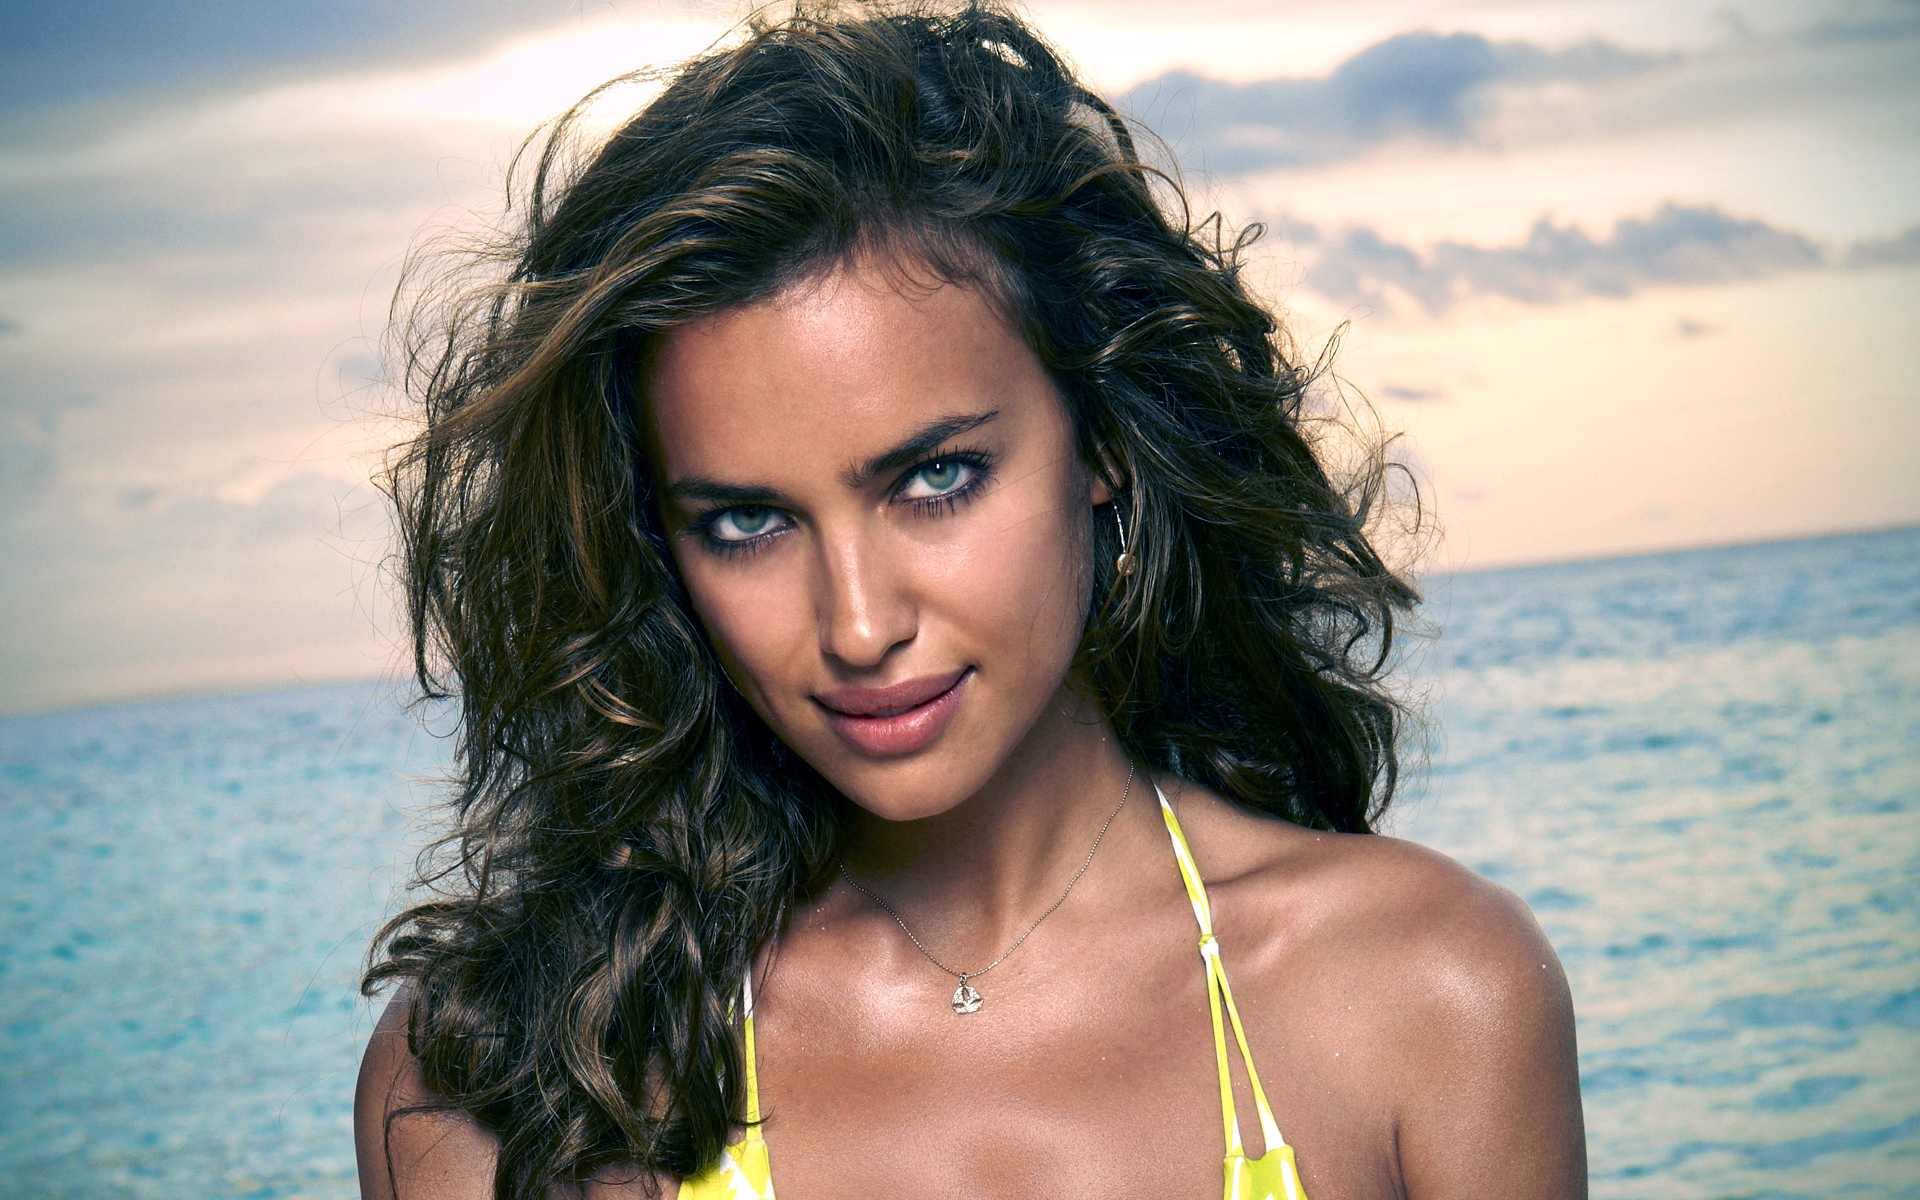 Irina Shayk Outside Pics - Irina Shayk Net Worth, Pics, Wallpapers, Career and Biography